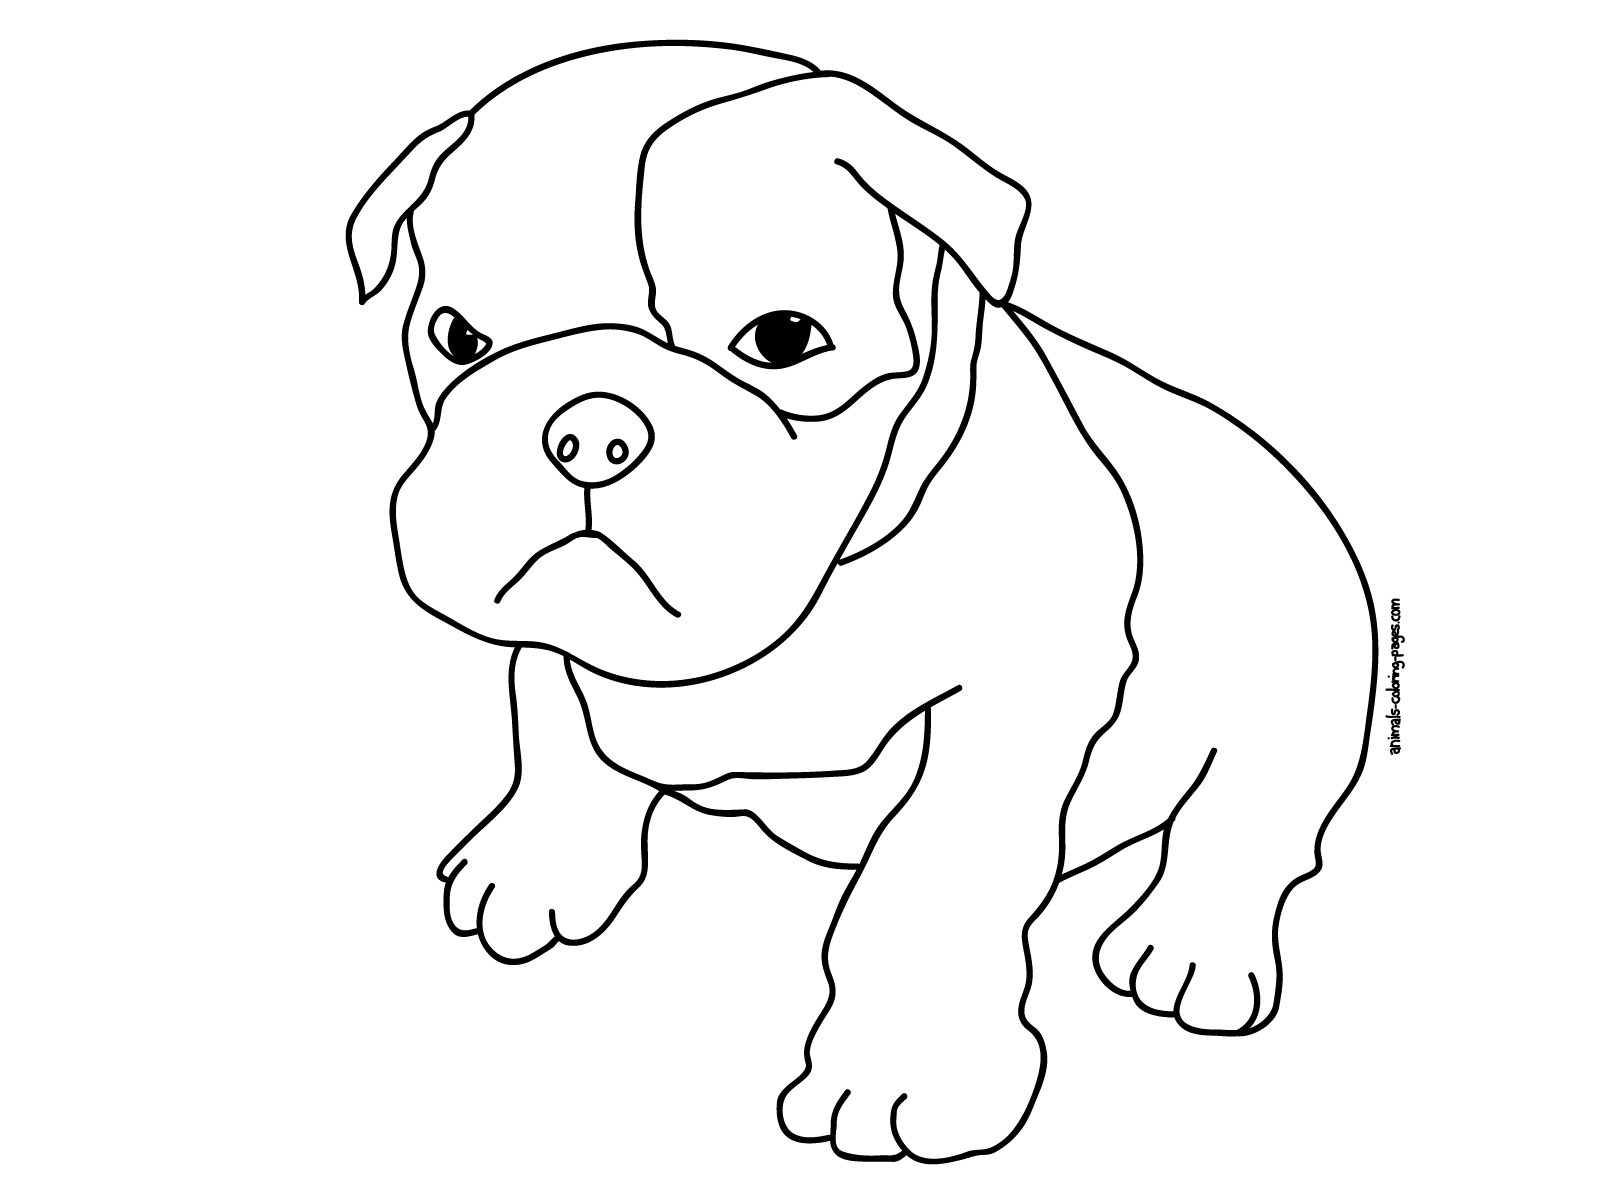 1600x1200 Cute Animal Coloring Pages To Print Coloring Page Of A Boxer